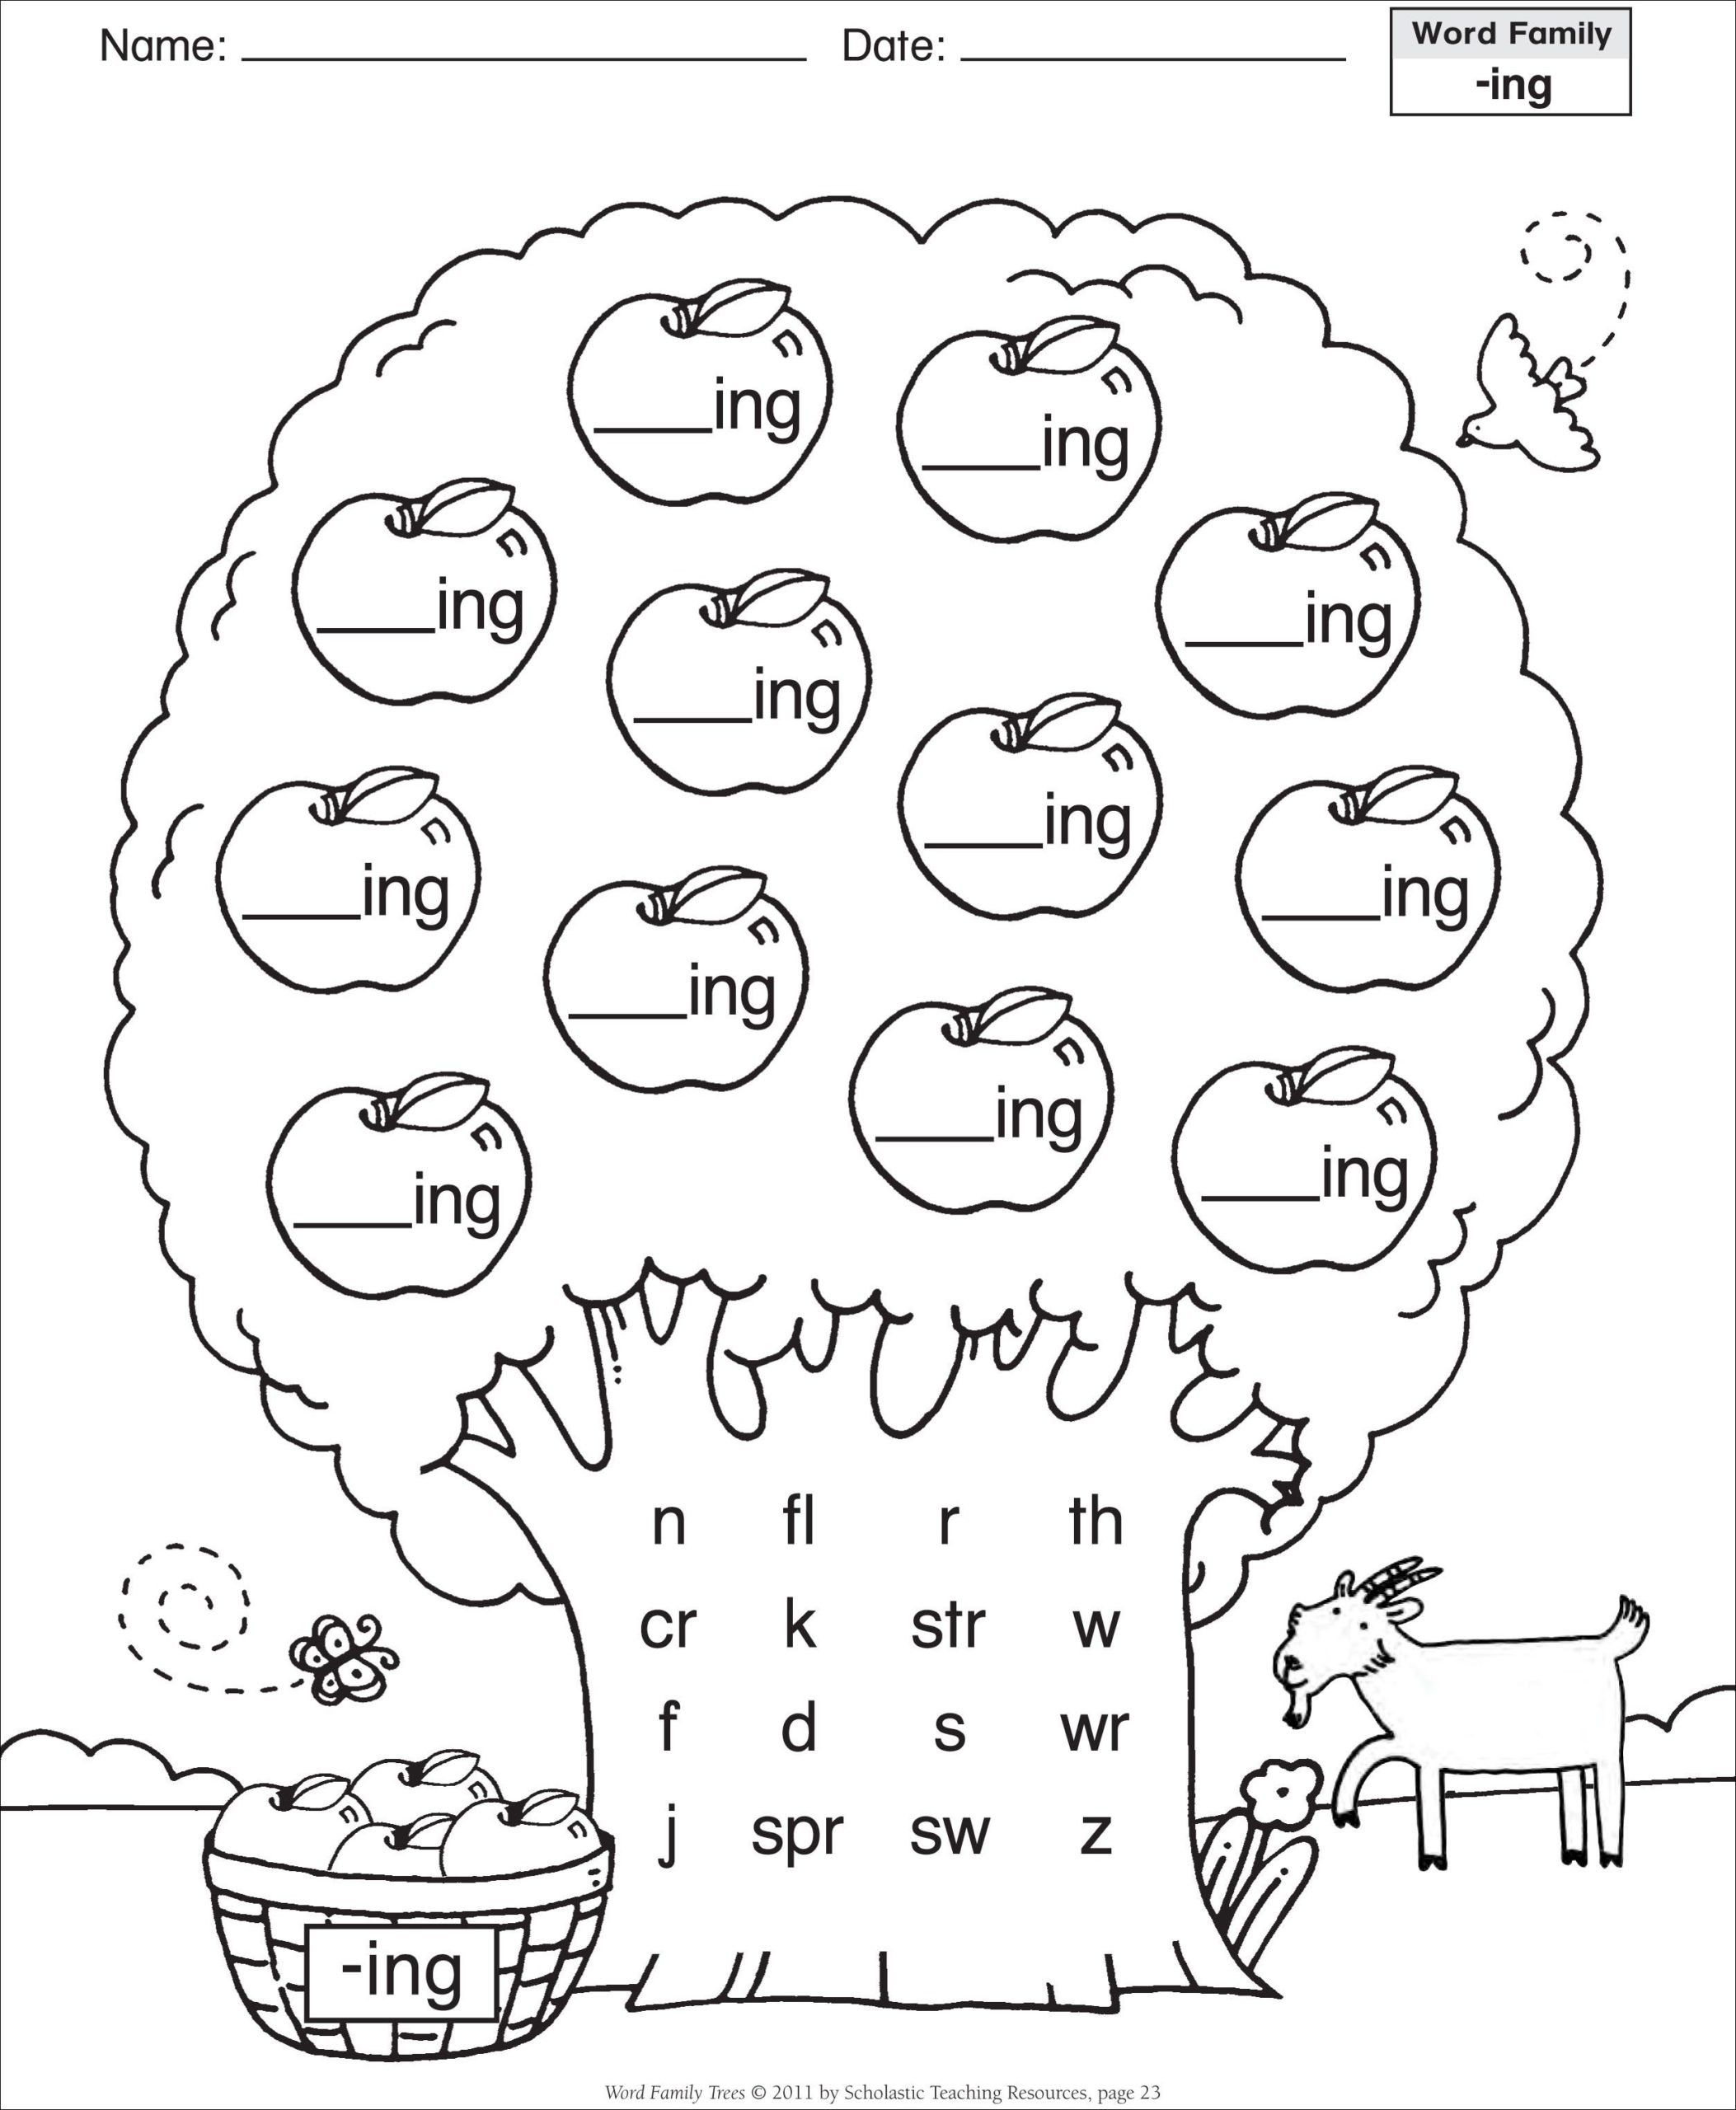 1st Grade Phonics Worksheets Pdf Monthly Archives April 2020 Make A 10 to Add First Grade